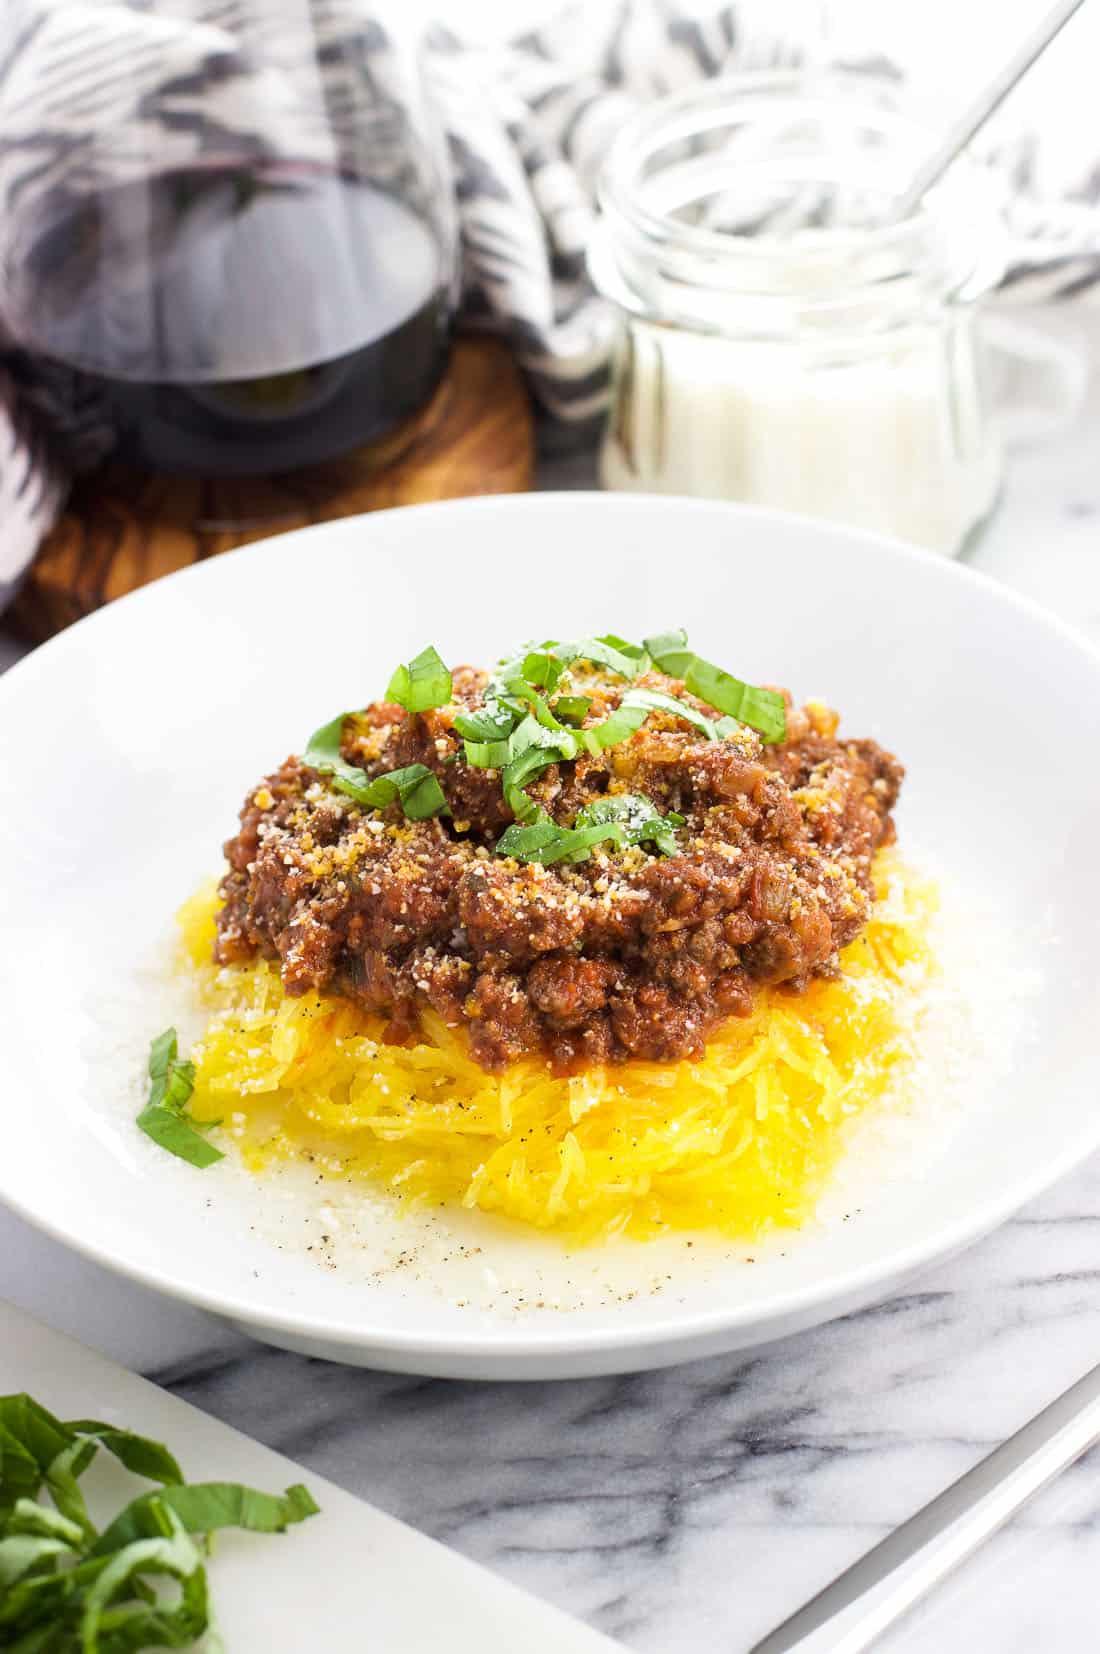 Bolognese sauce served over cooked spaghetti squash strands in a bowl with Pecorino Romano and basil on top as garnish, with extra cheese and a glass of red wine in the background